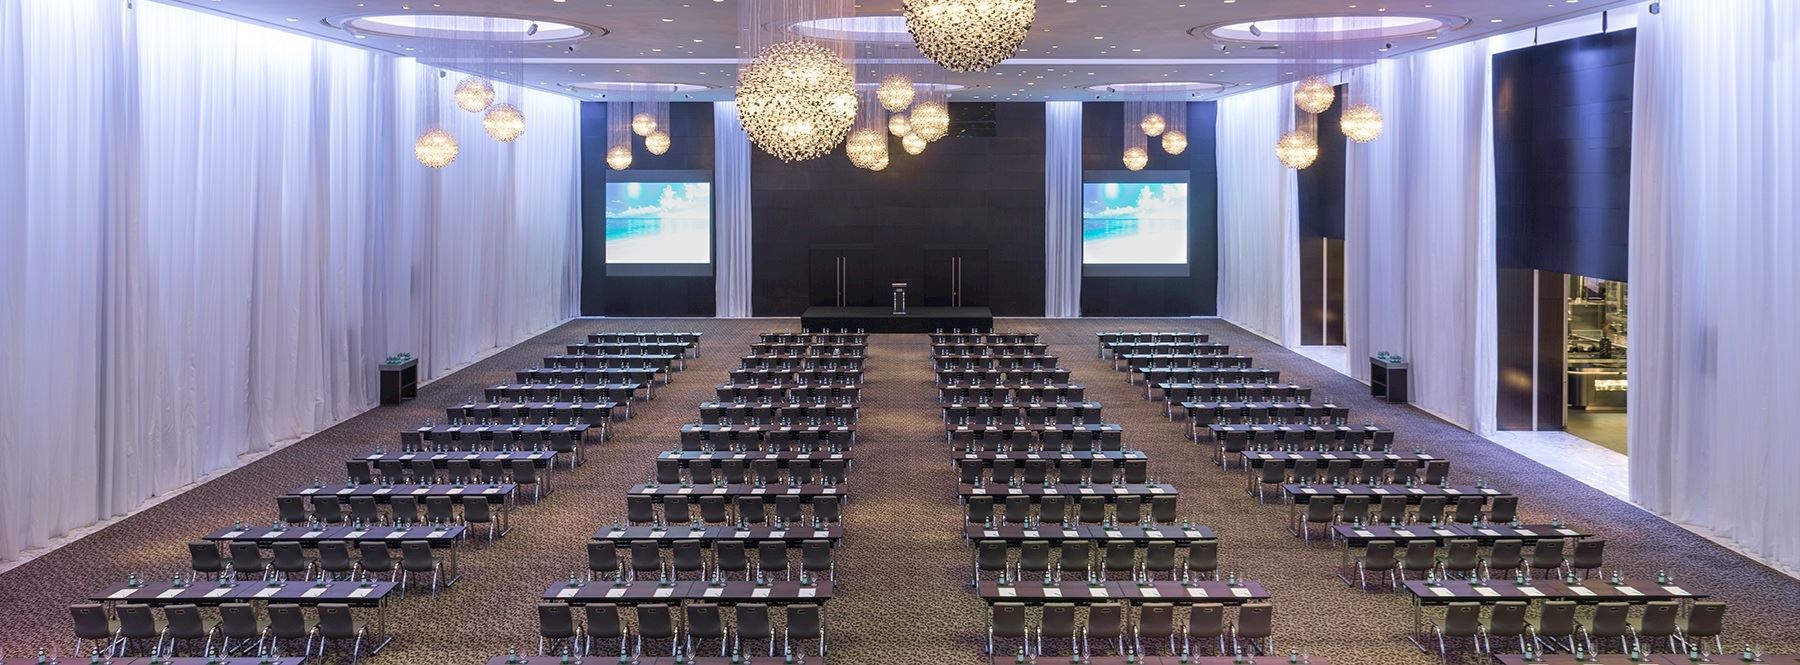 Great Ballroom Theatre Setup